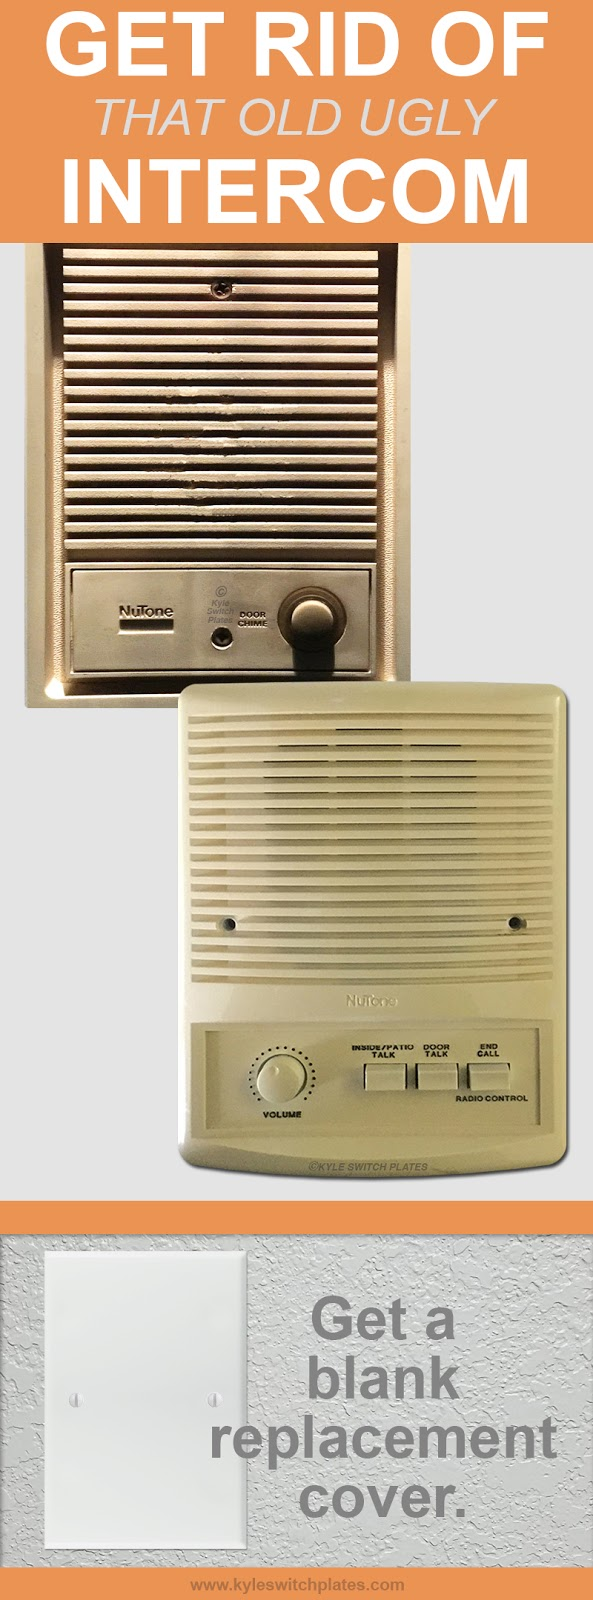 Shop All Doorbell And Intercom Cover Plates Here.